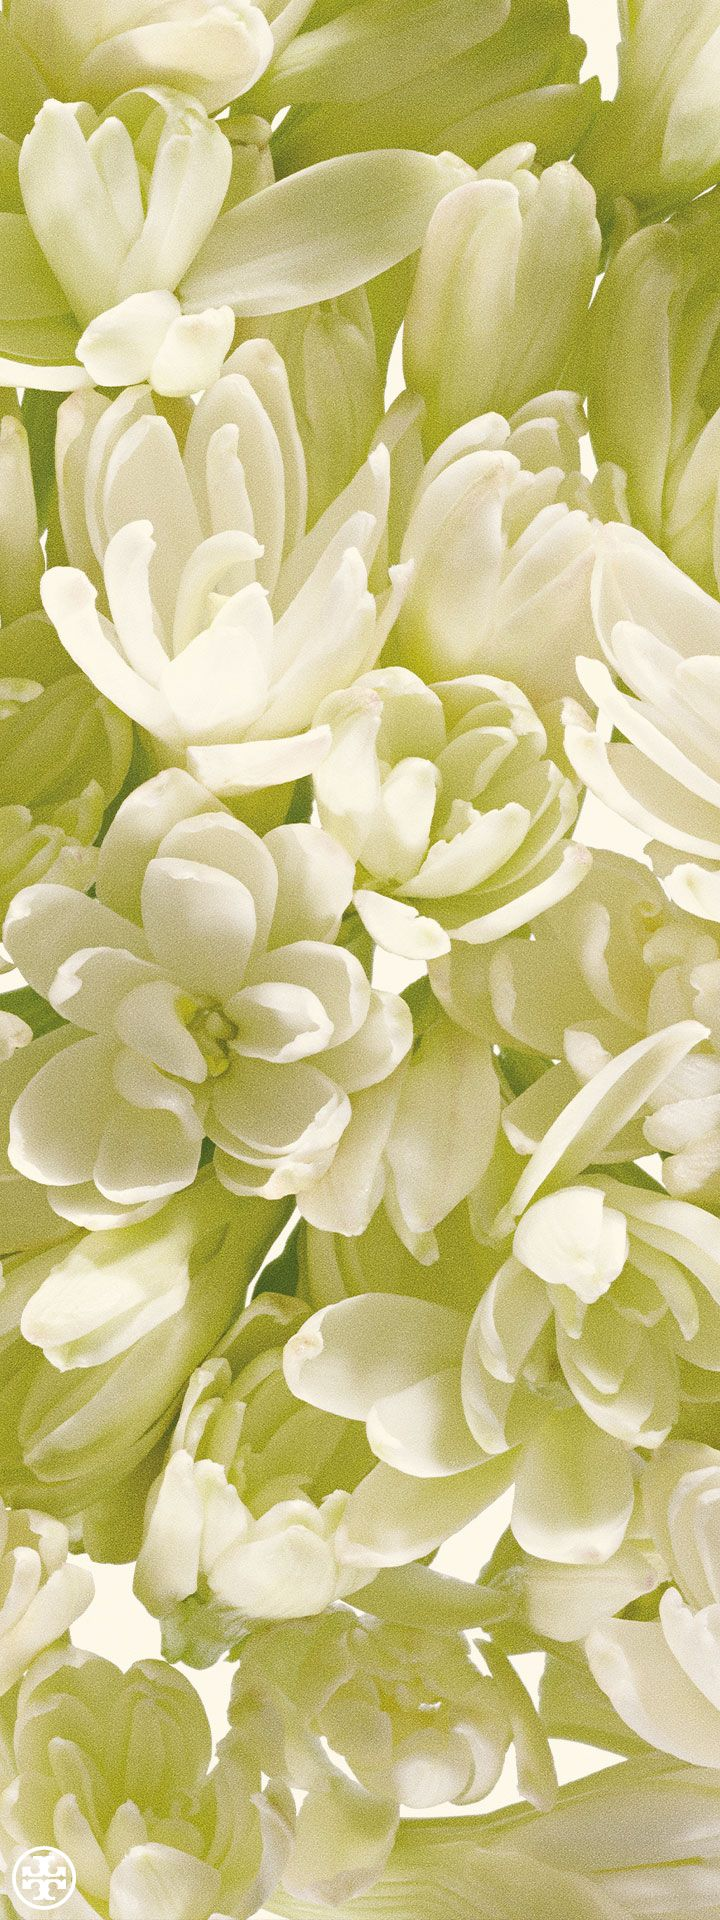 Lush tuberose, a floral note from Tory's first fragrance